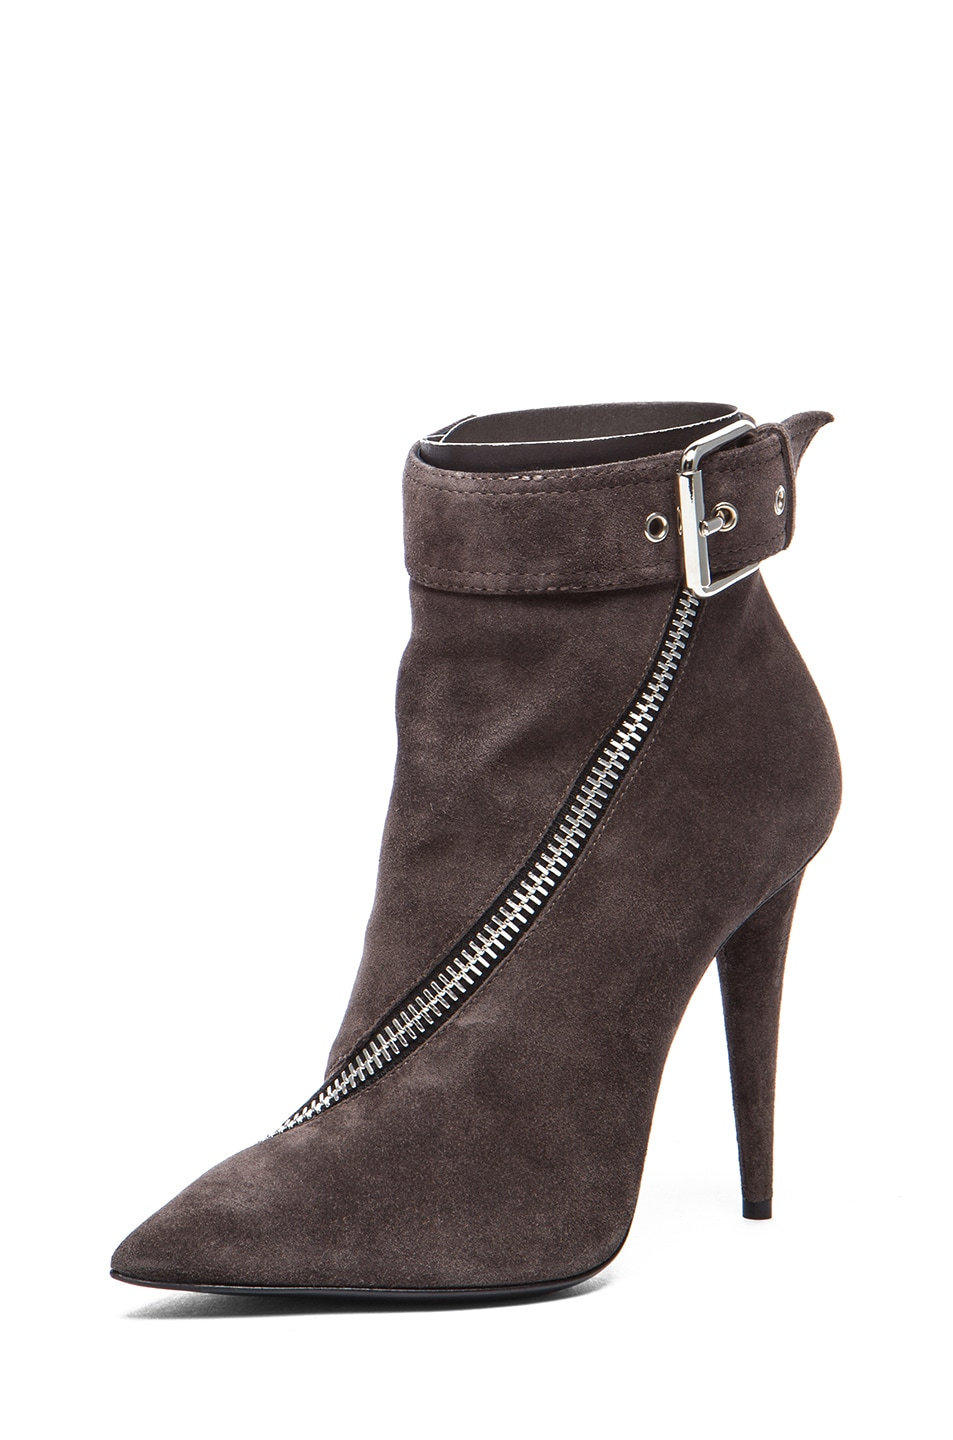 Image 2 of Giuseppe Zanotti Suede Booties in Flan